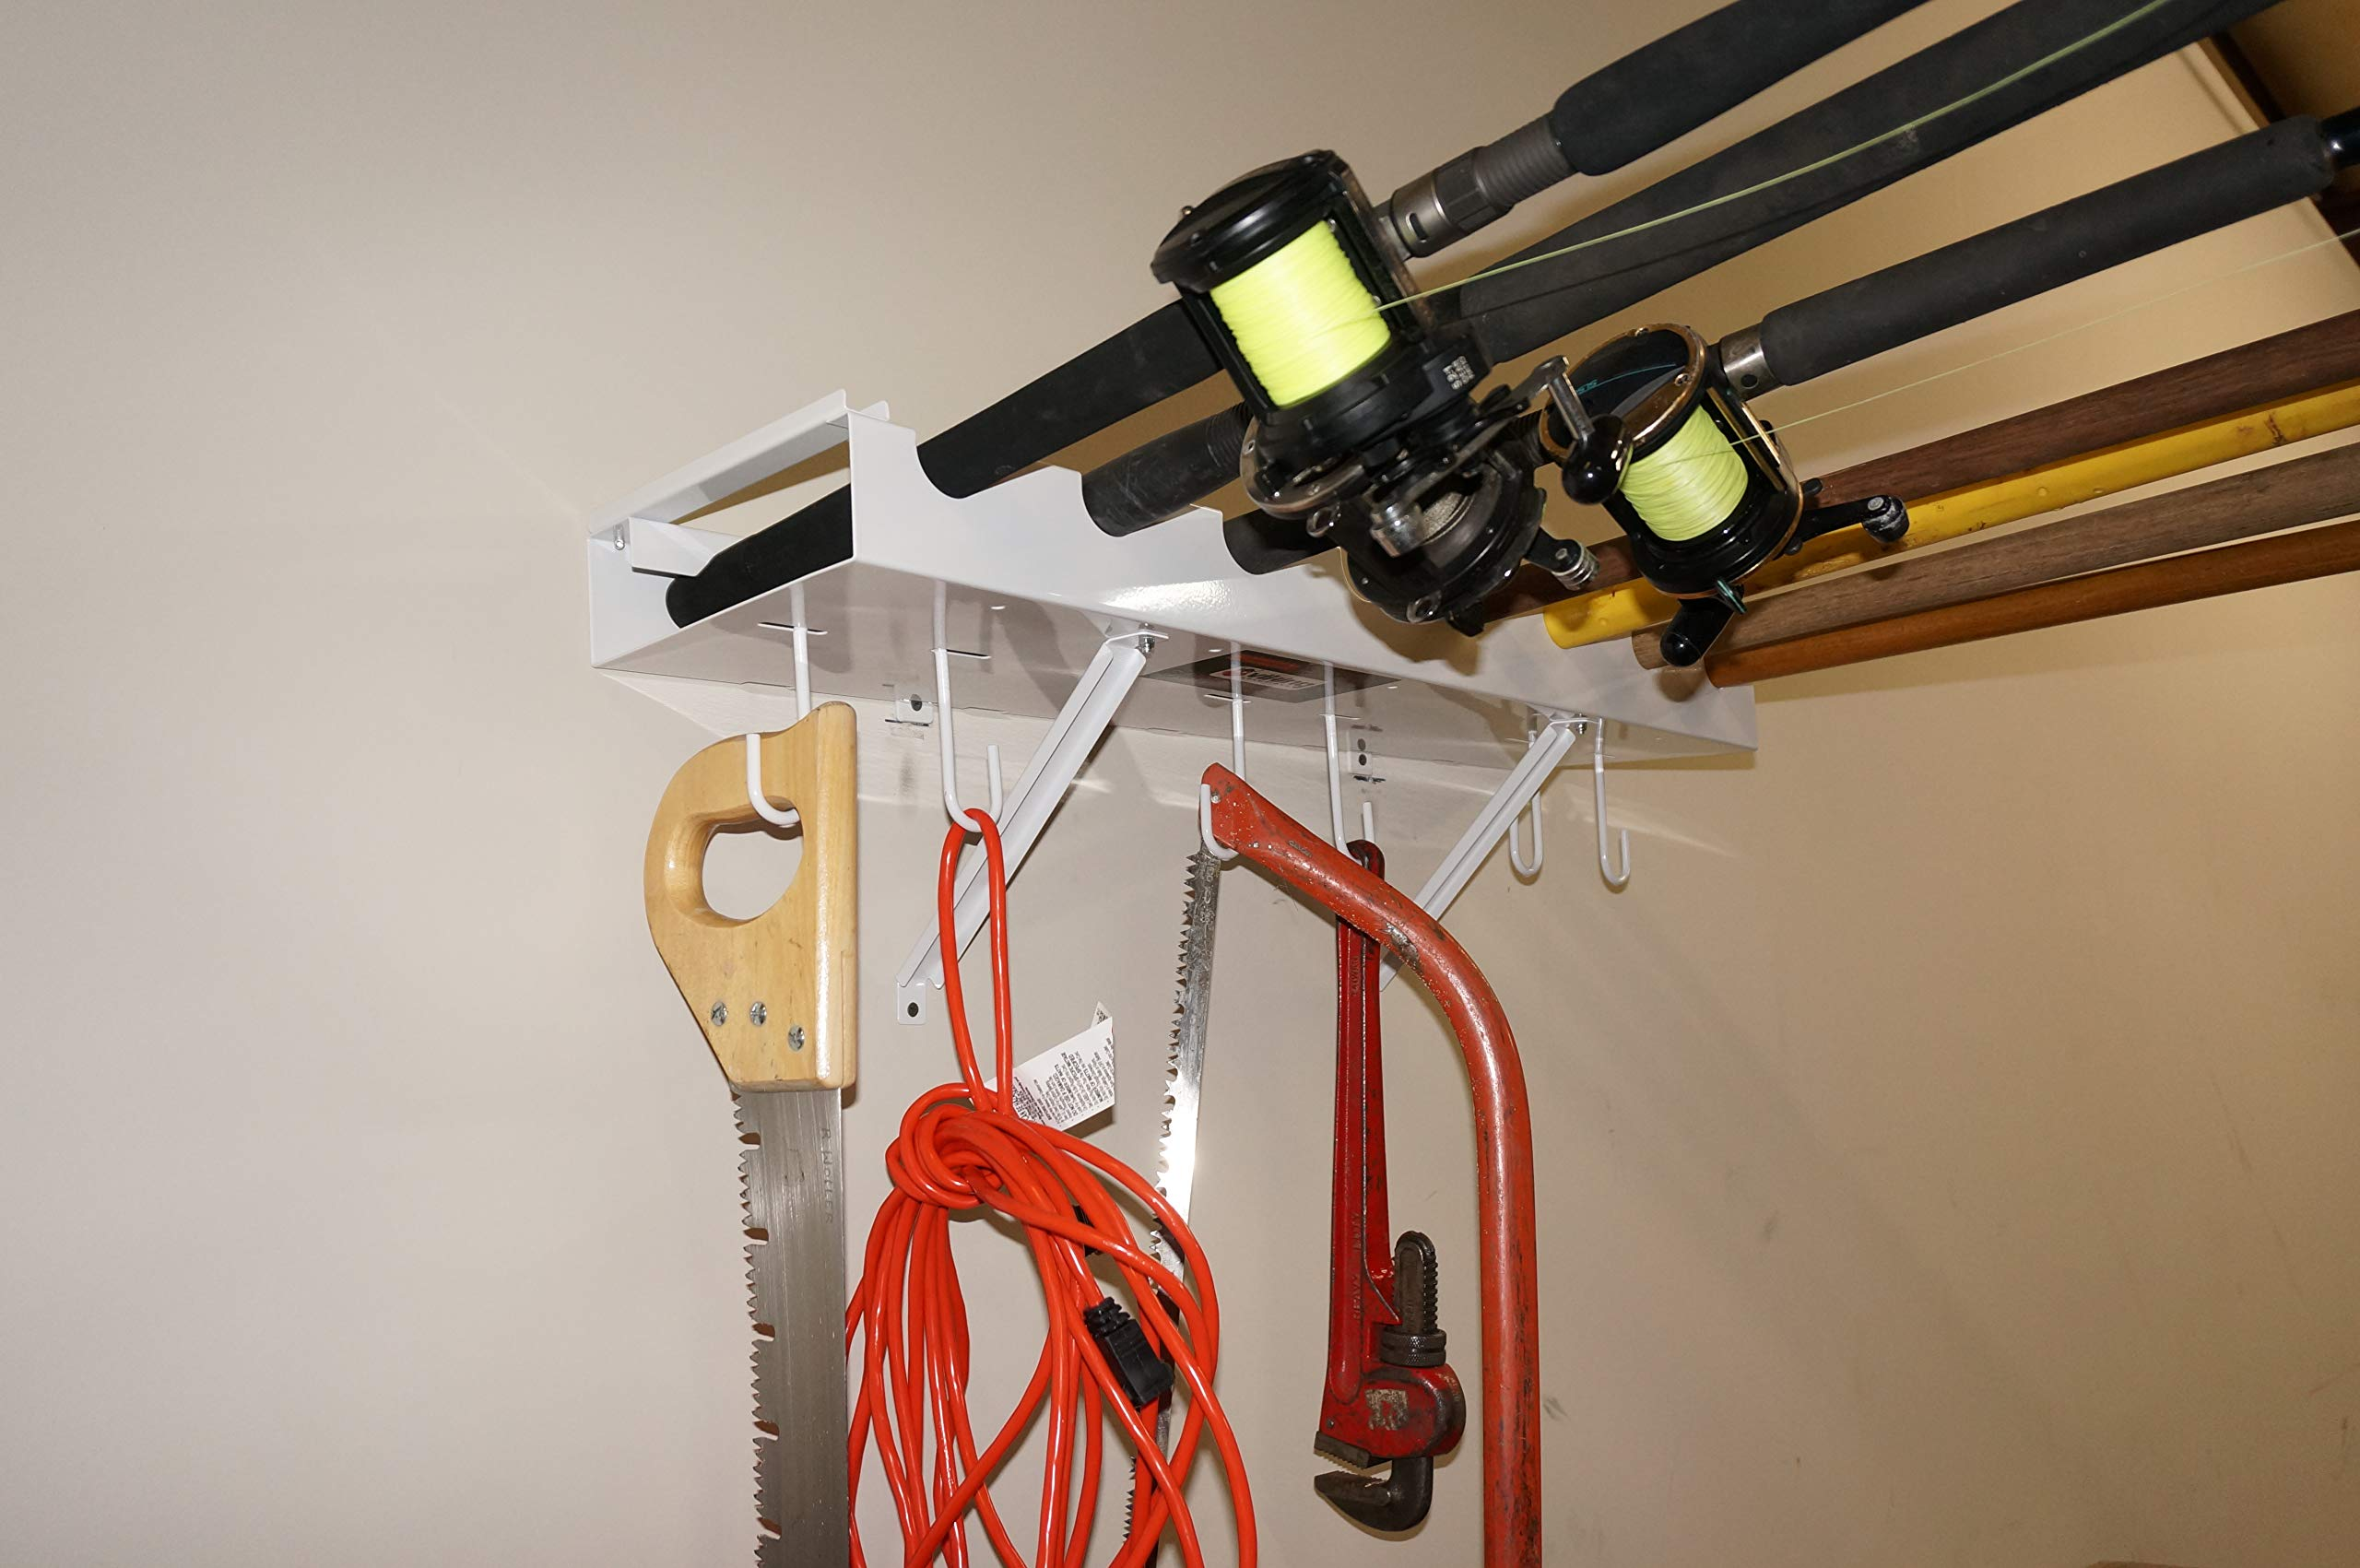 Viking Overhead Wall Mount Tool-Fishing Rod Holder by Viking Solutions (Image #2)